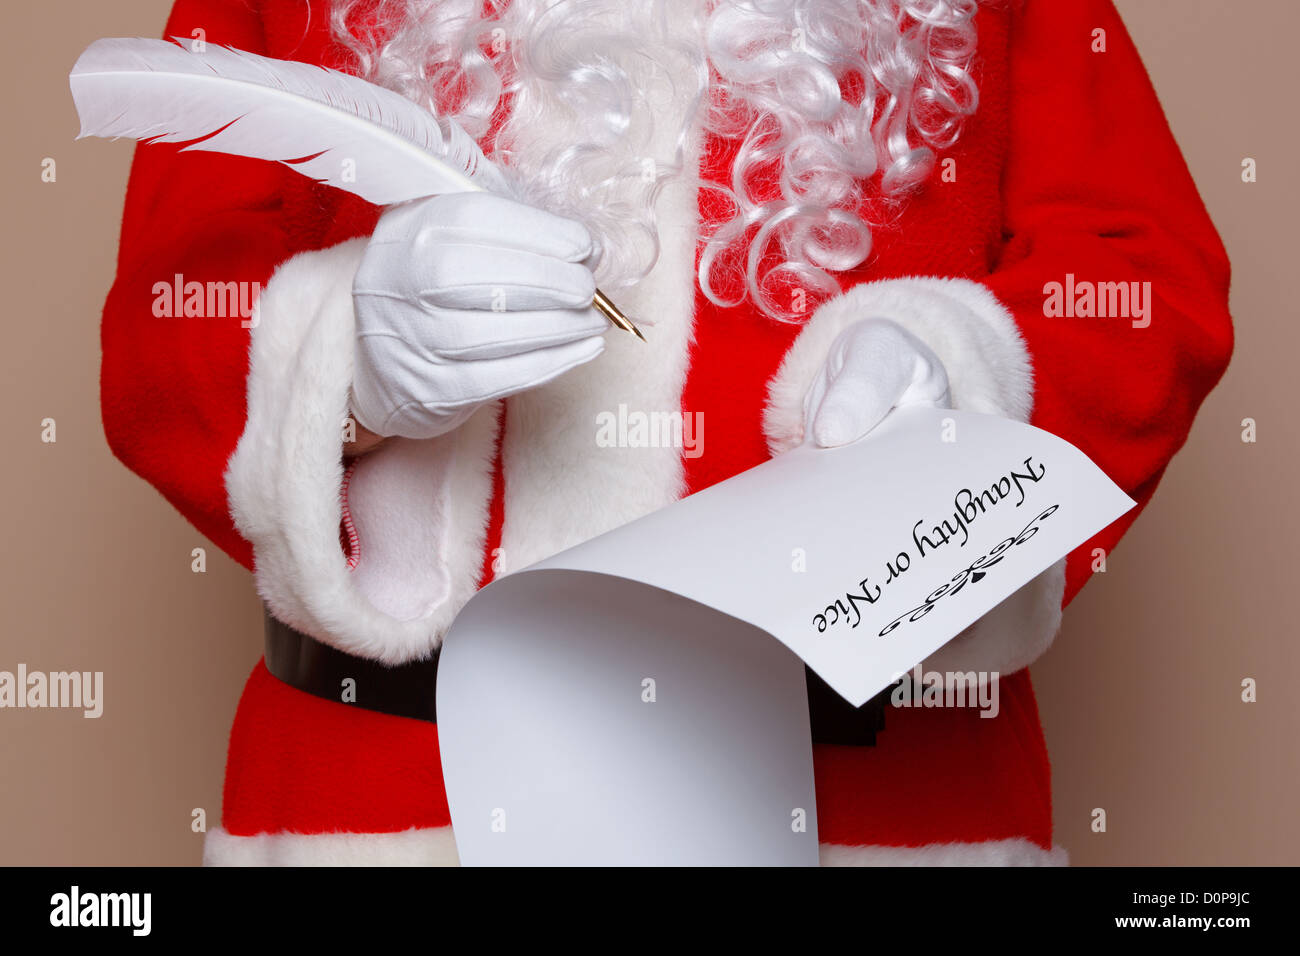 Santa Claus holding a quill pen whilst checking the naughty or nice list. - Stock Image